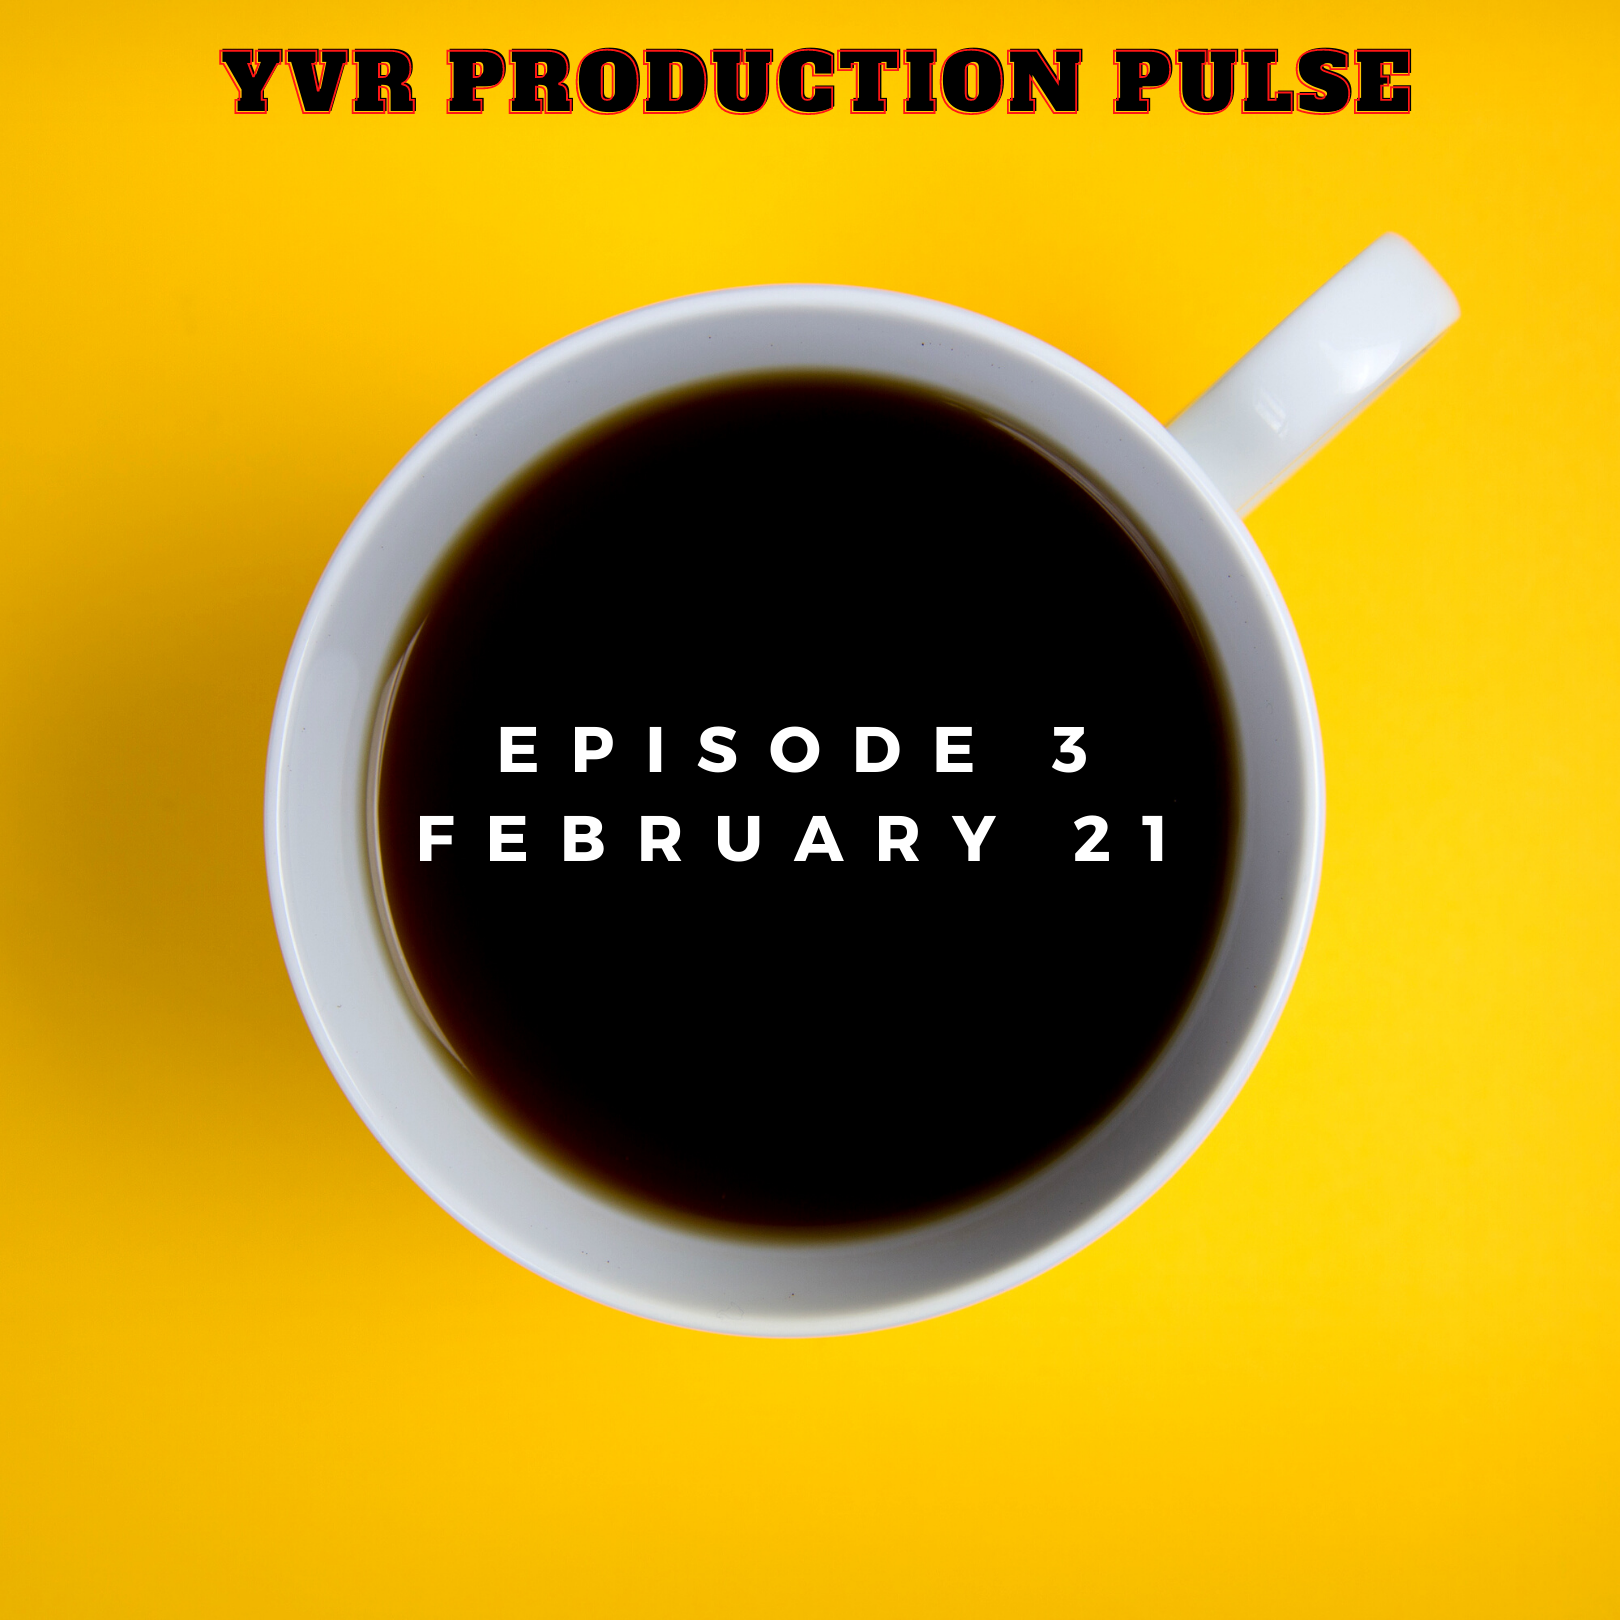 YVR Production Pulse Episode 3 February 2021